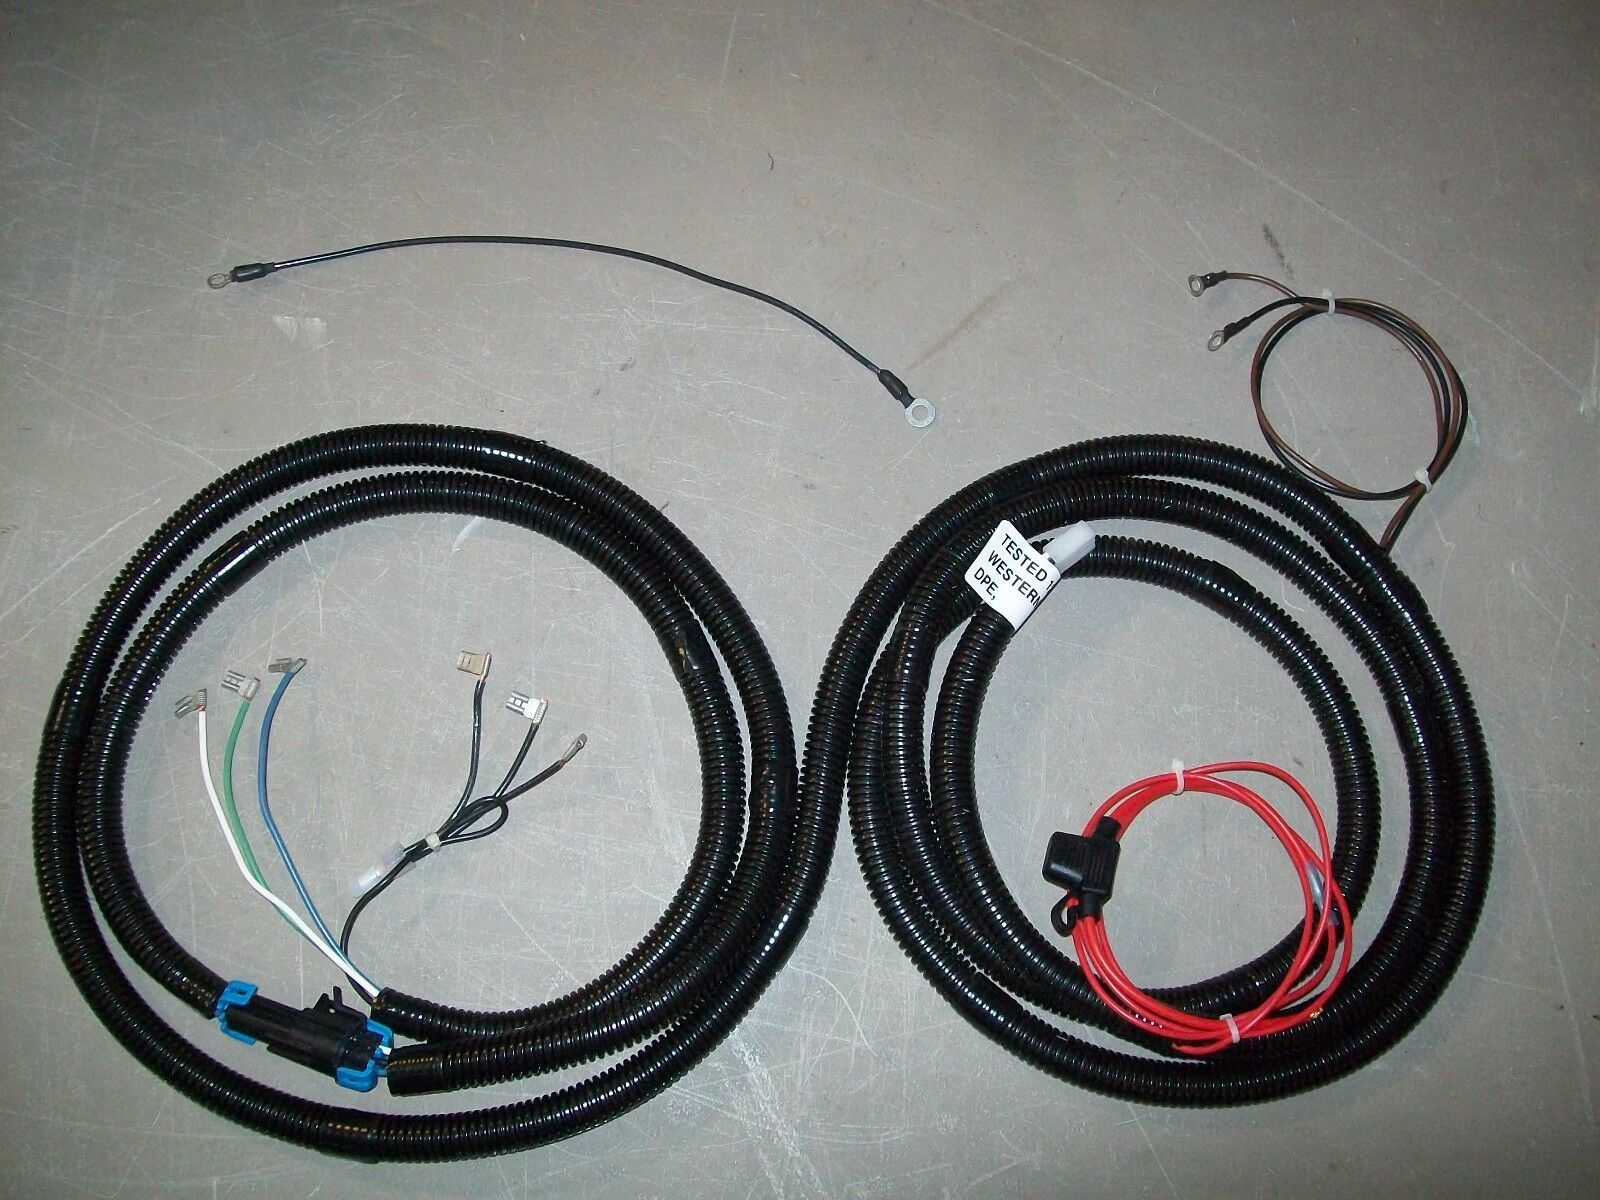 Western Snow Plow Unimount Wire Harness - Electric Solenoid Controlled  Pumps 1 of 2FREE Shipping ...